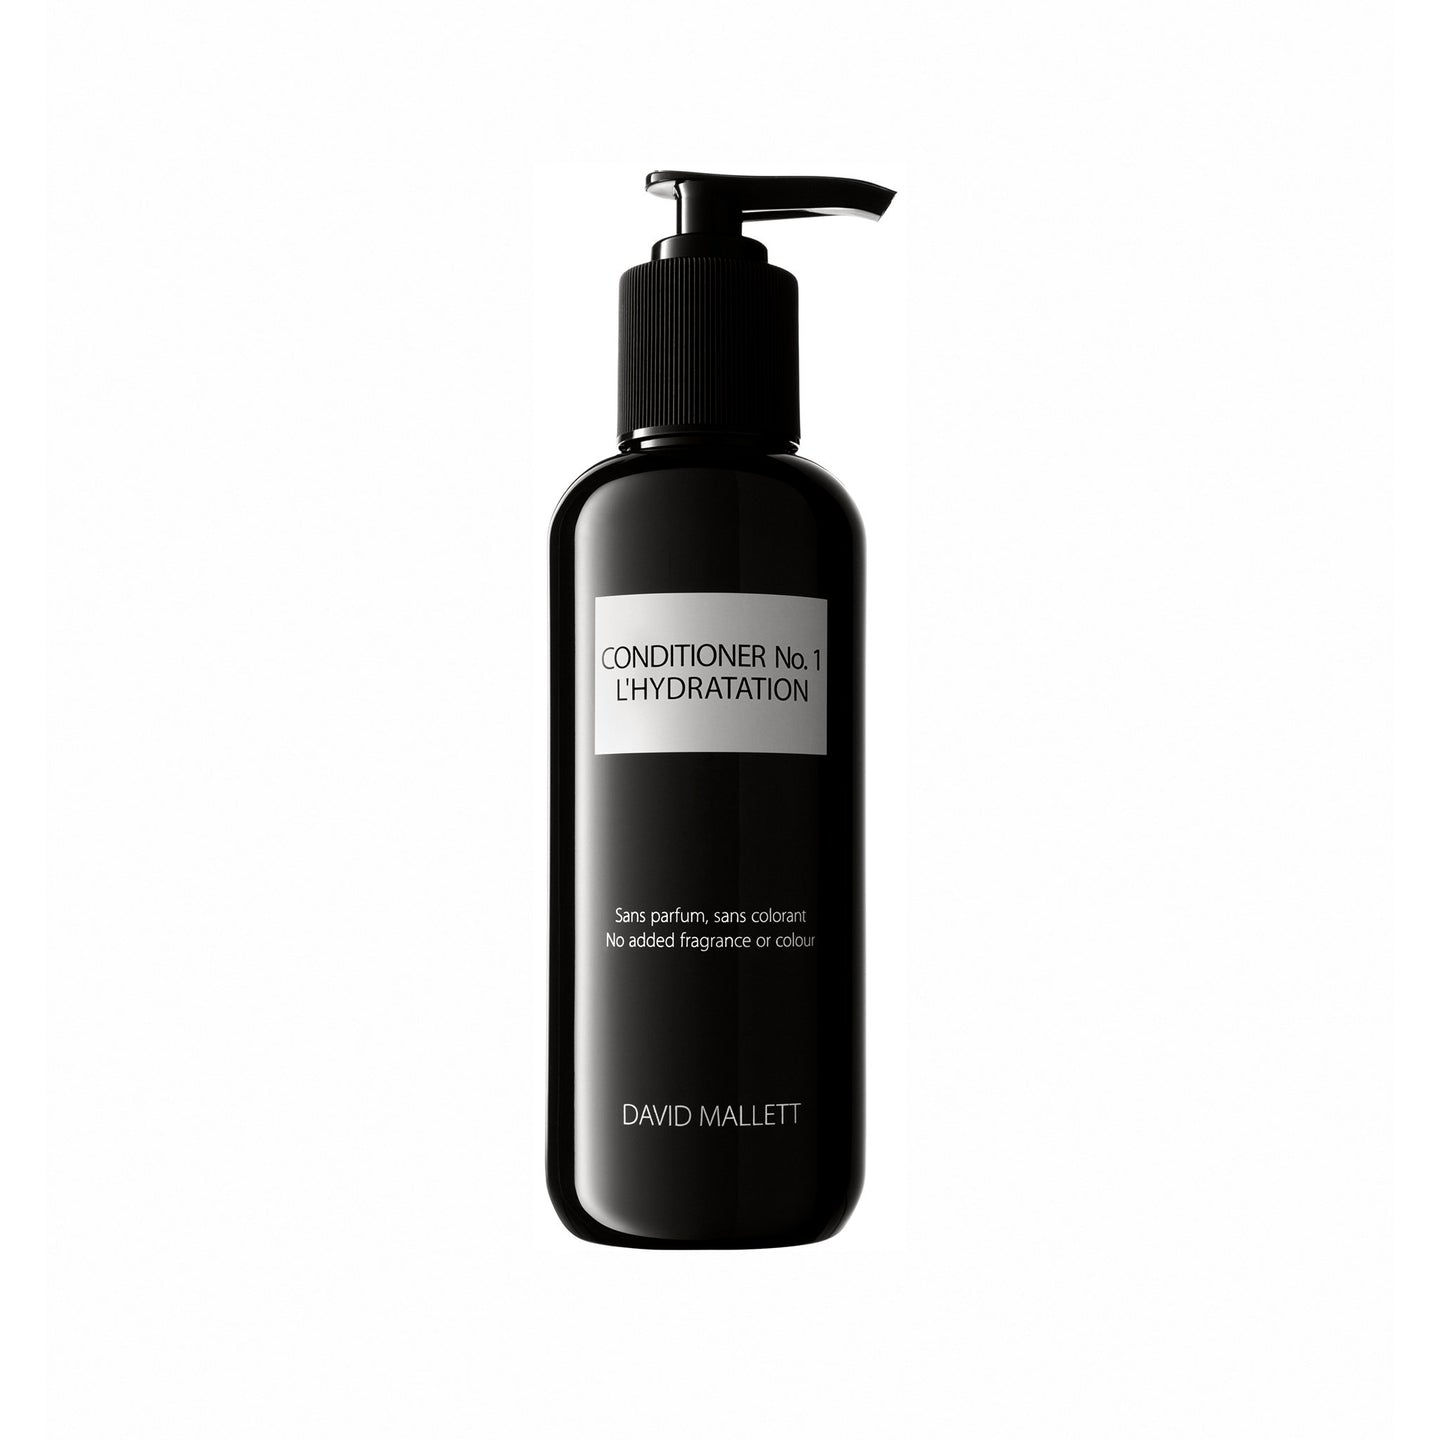 David Mallett Conditioner No. 1 L'Hydratation